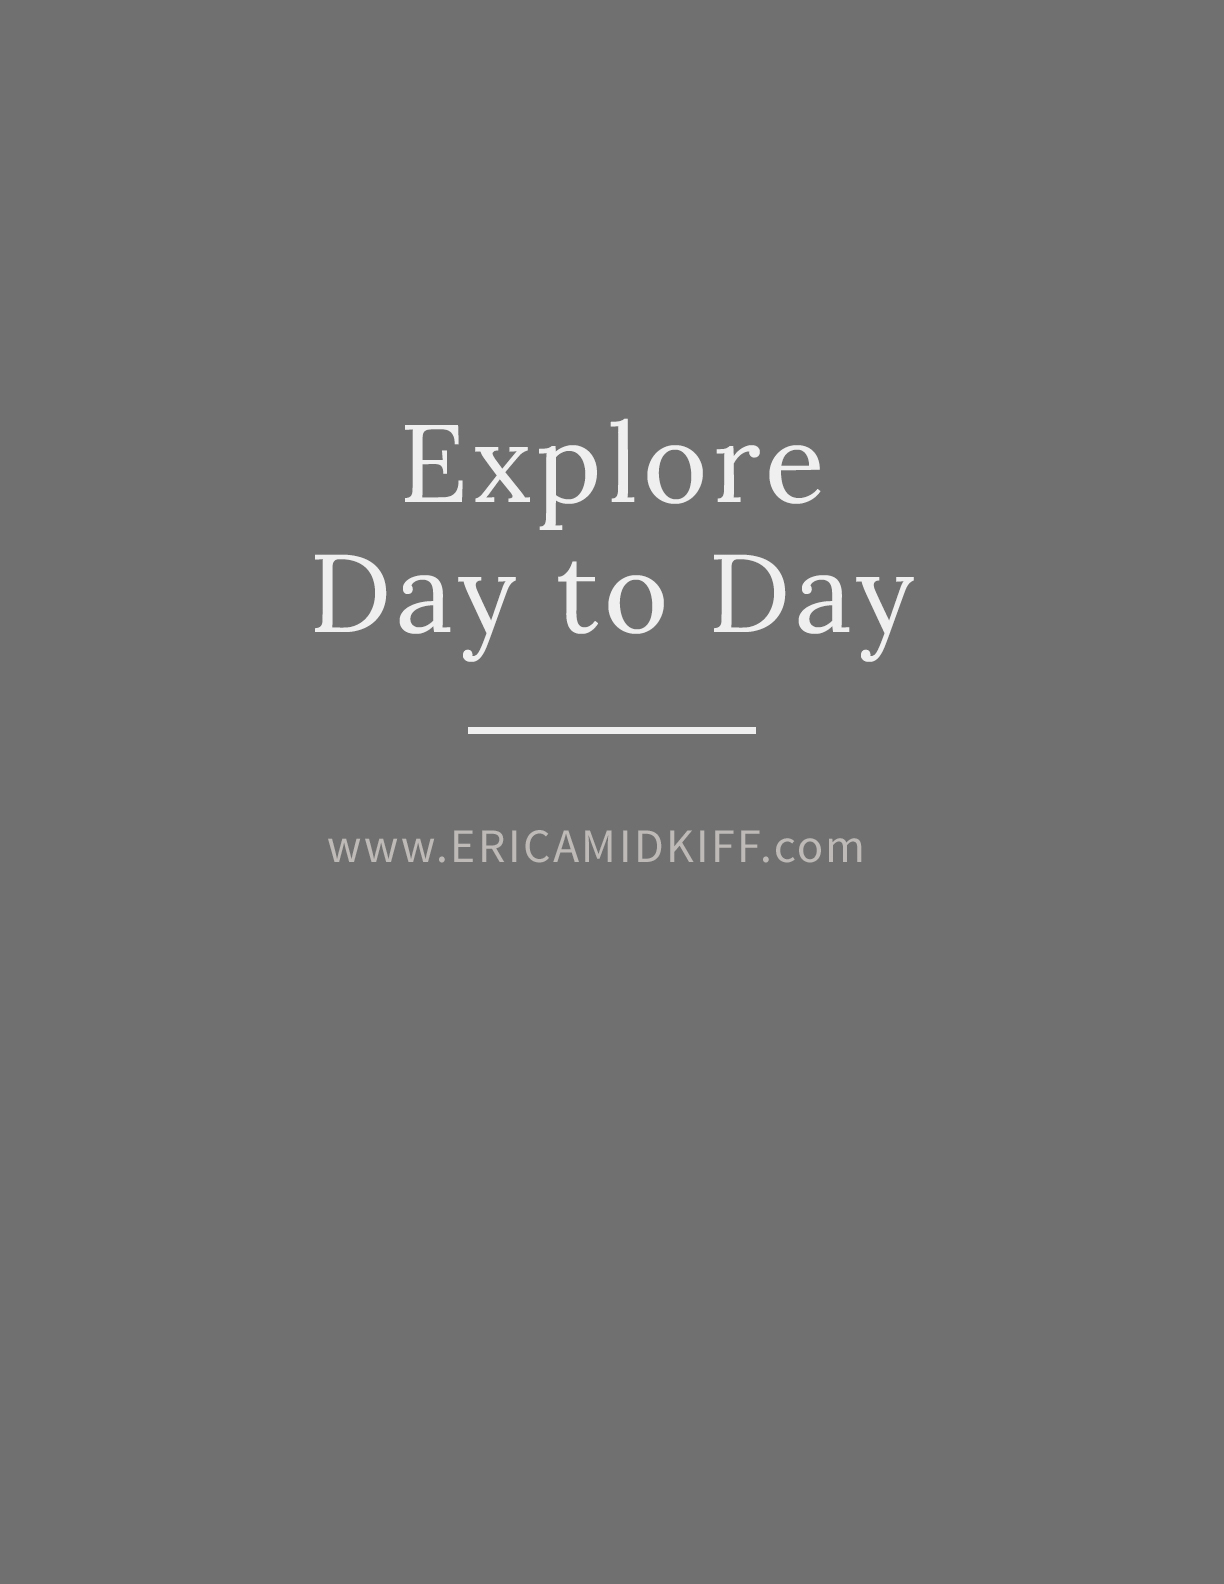 Explore Day to Day Cover.jpg